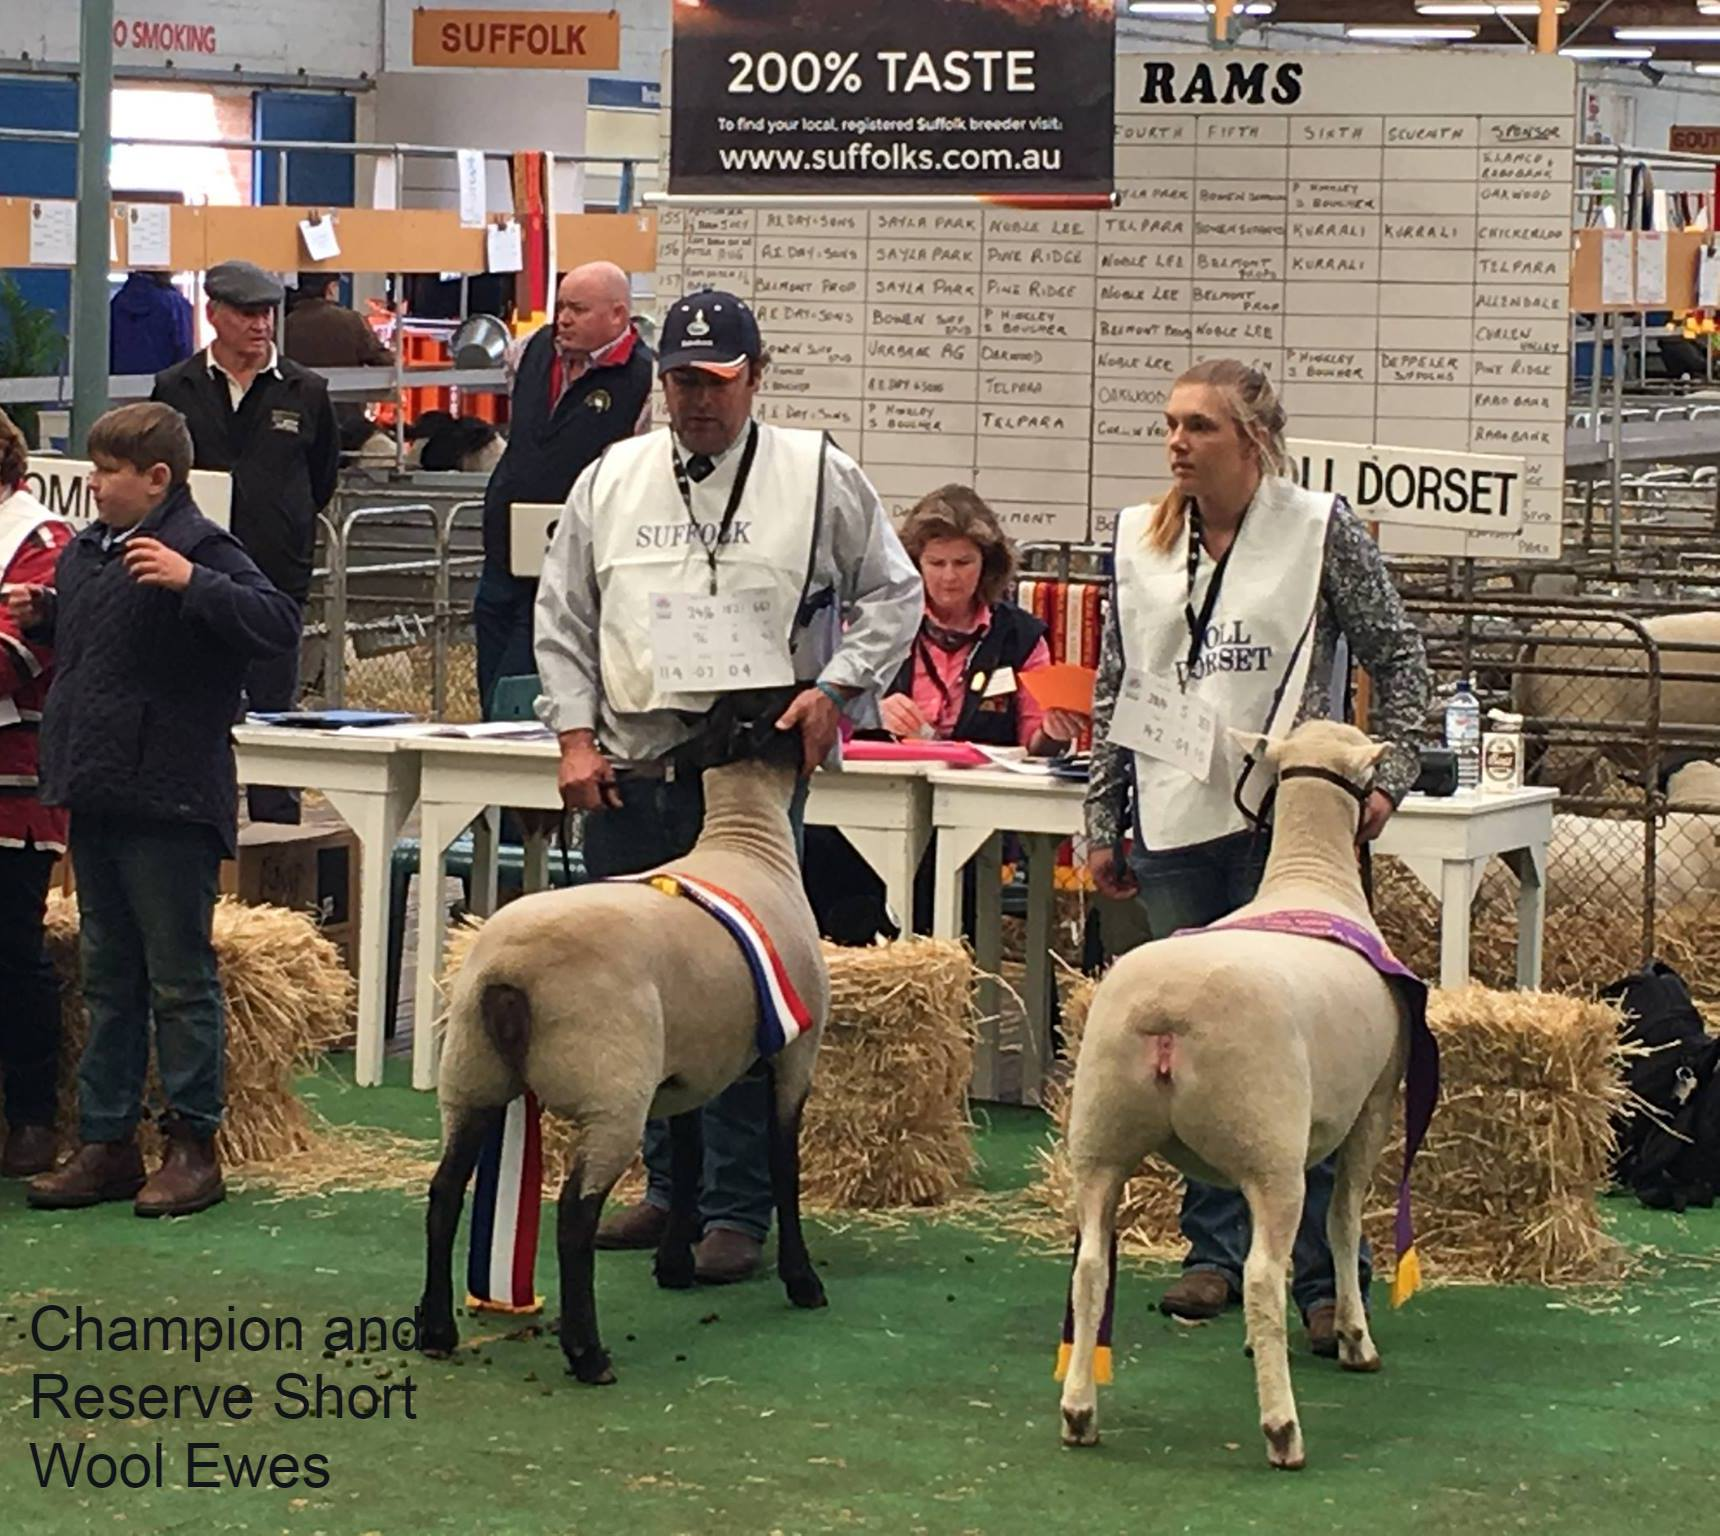 champ and res shortwool ewe